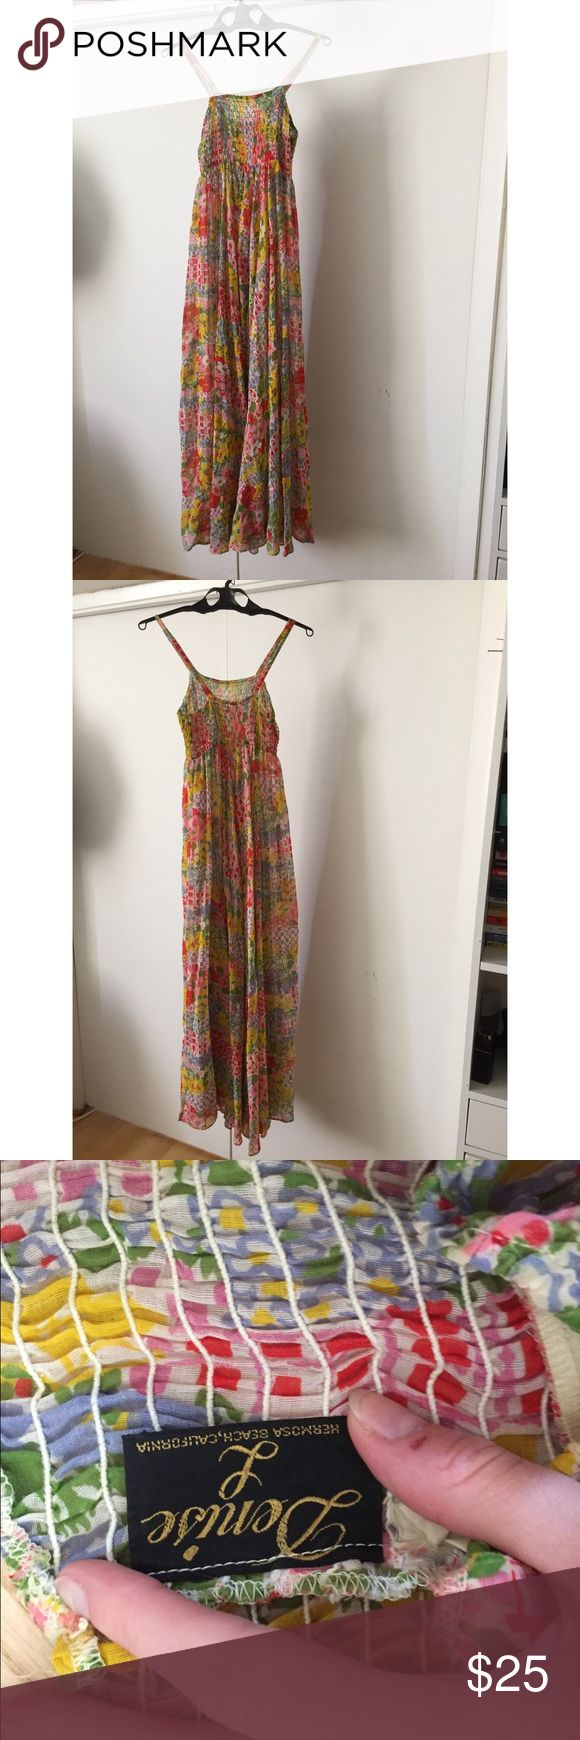 """*VINTAGE* 70's Floral Dress So fun! Vintage 70's floral dress. Floor length. It is pretty transparent so it would be best with a slip or worn as a cover up at the beach. I am 5'8"""" and it almost hits the floor on me. Unique Vintage Dresses Maxi"""